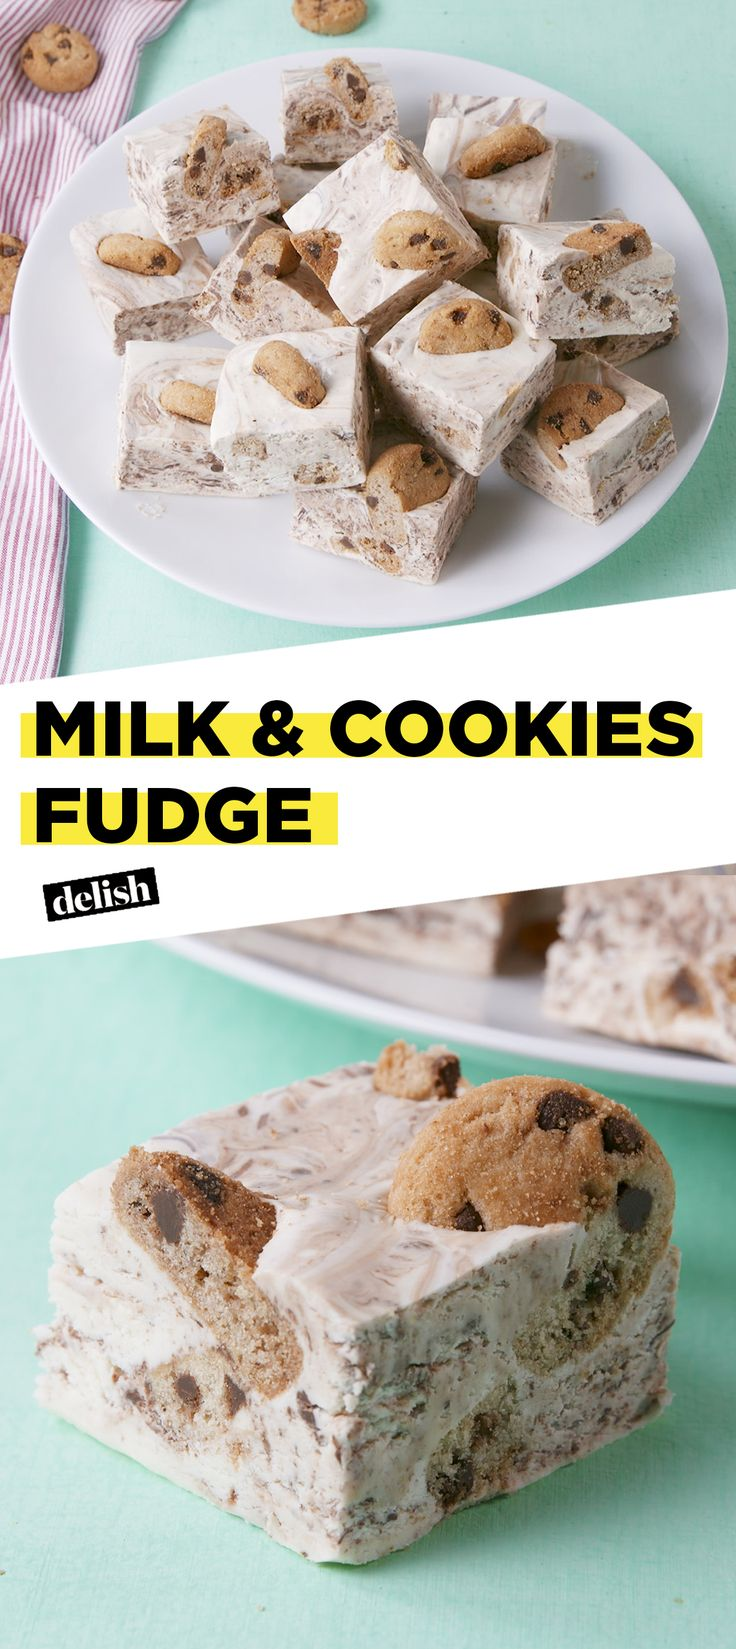 Milk & Cookies Fudge